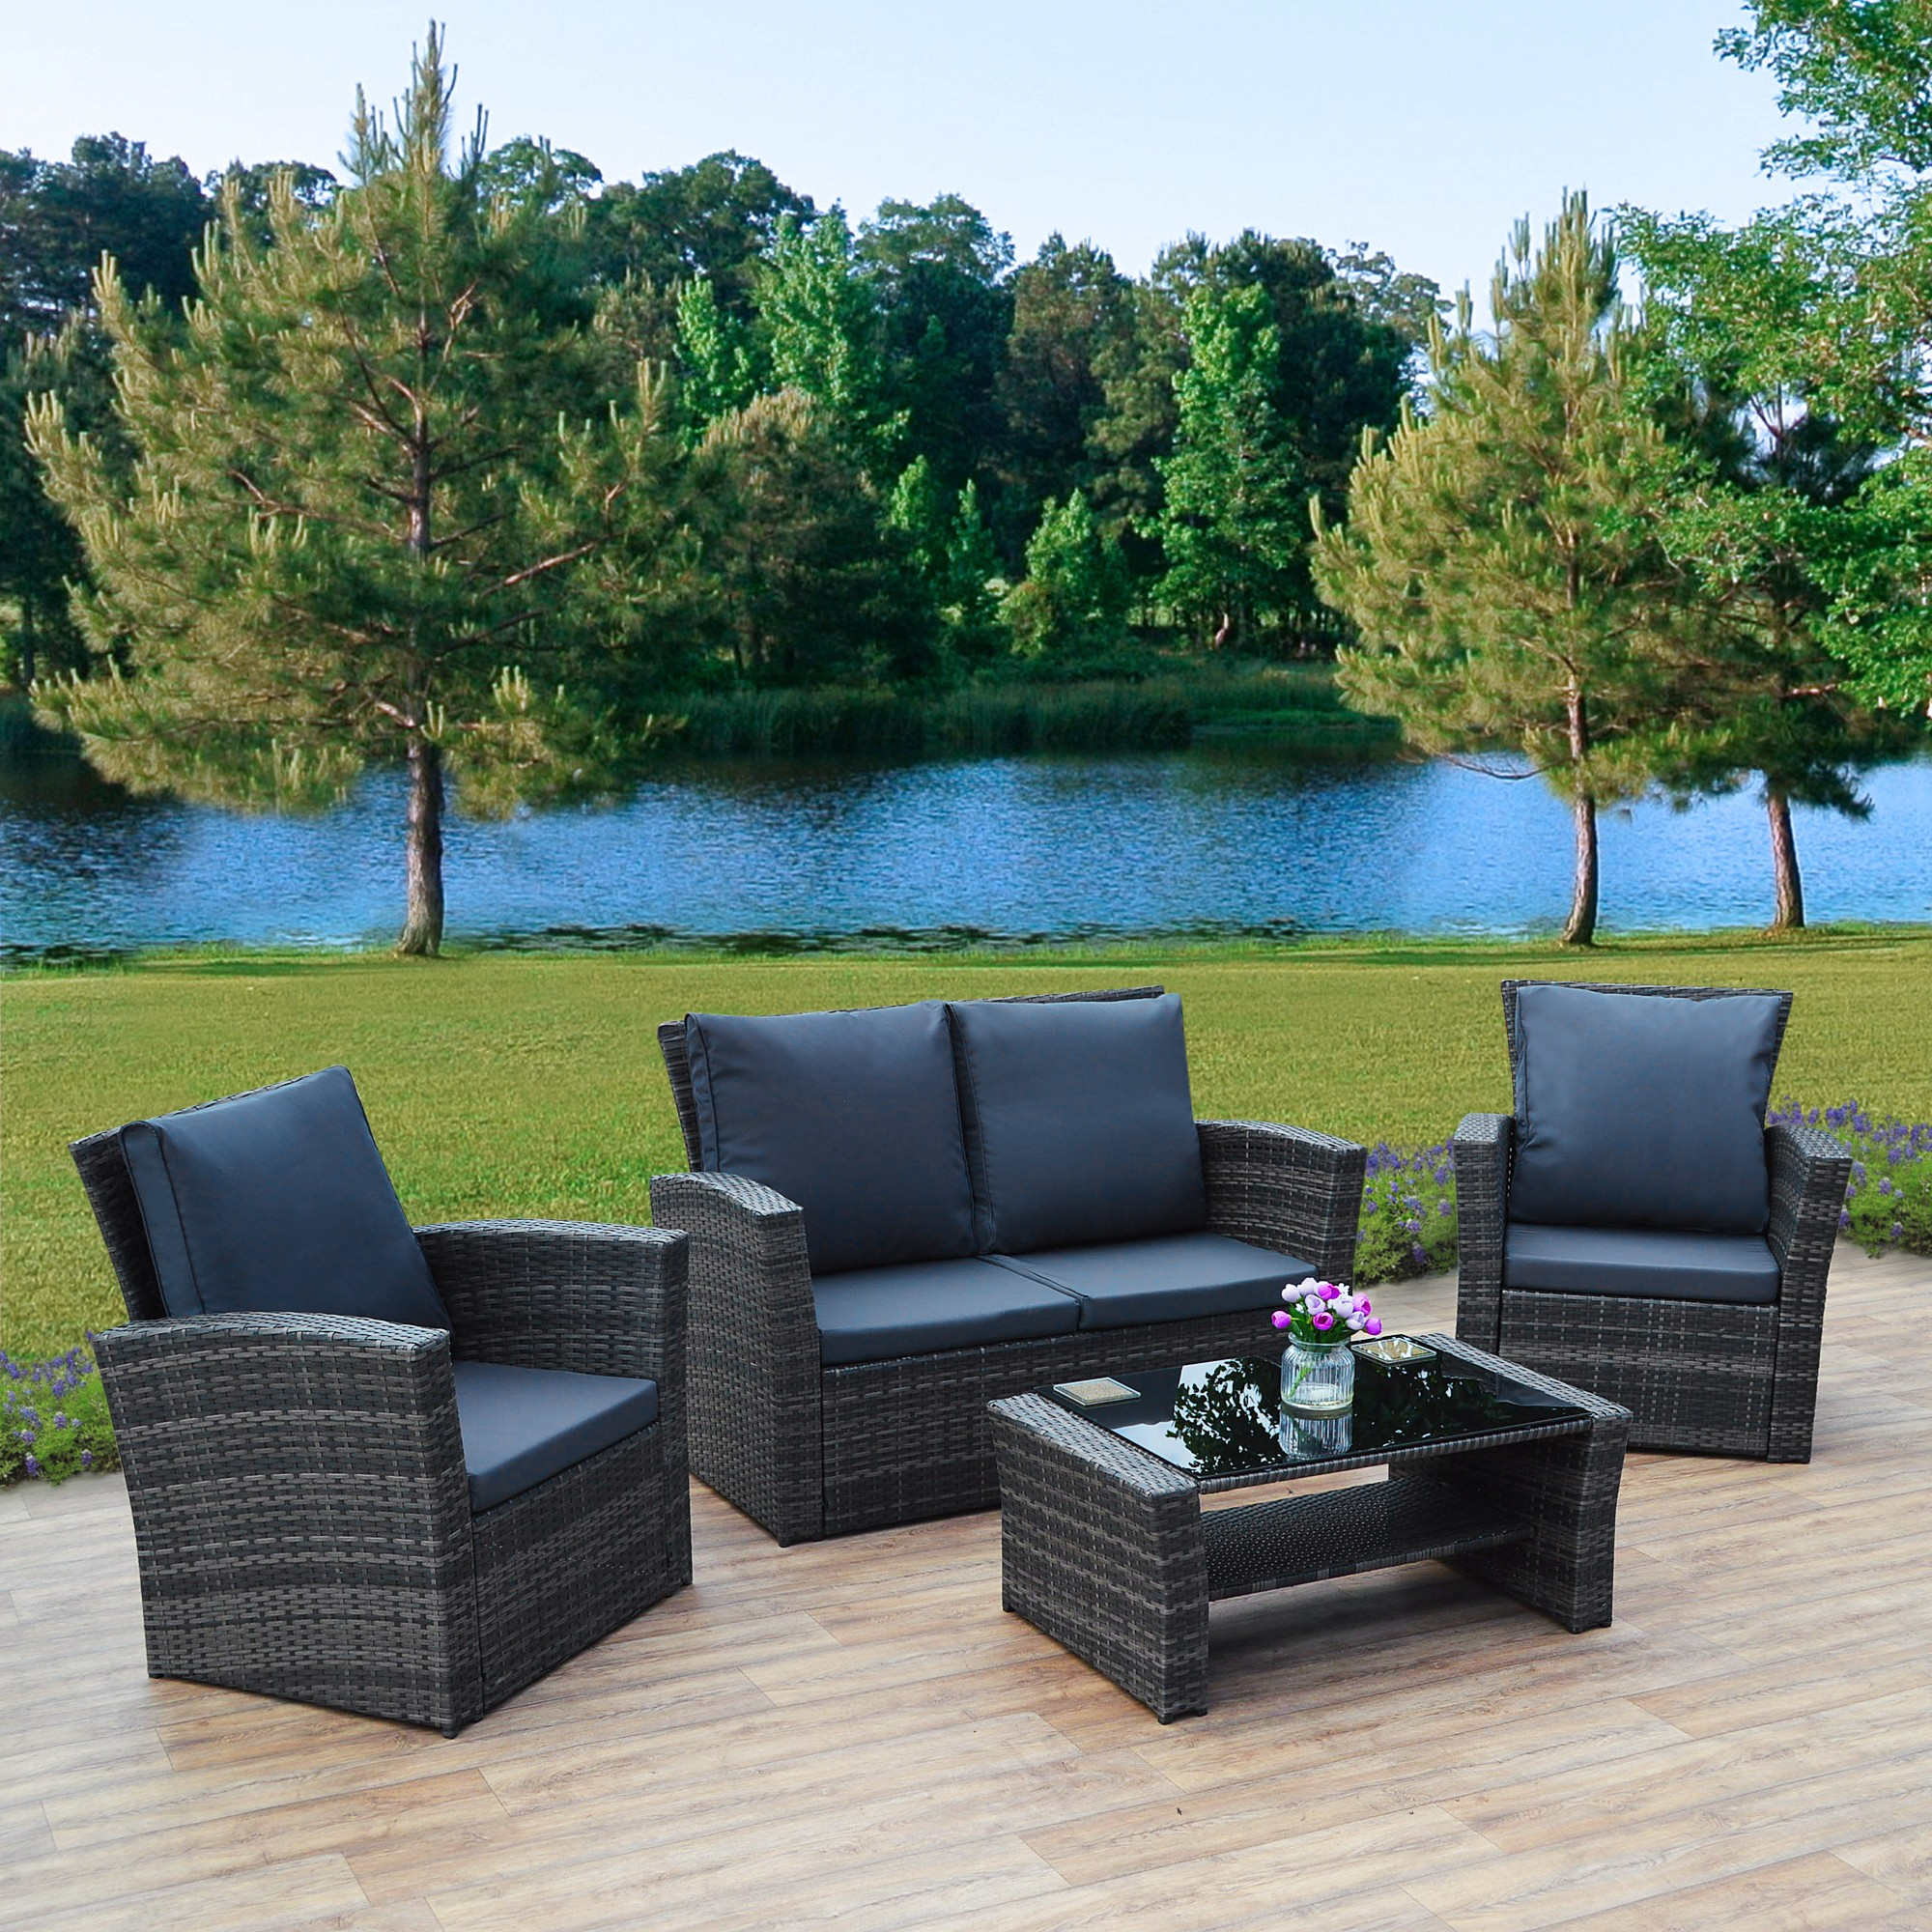 49f3ed819a99 4 Piece Algarve Rattan Sofa Set for patios, conservatories and ...